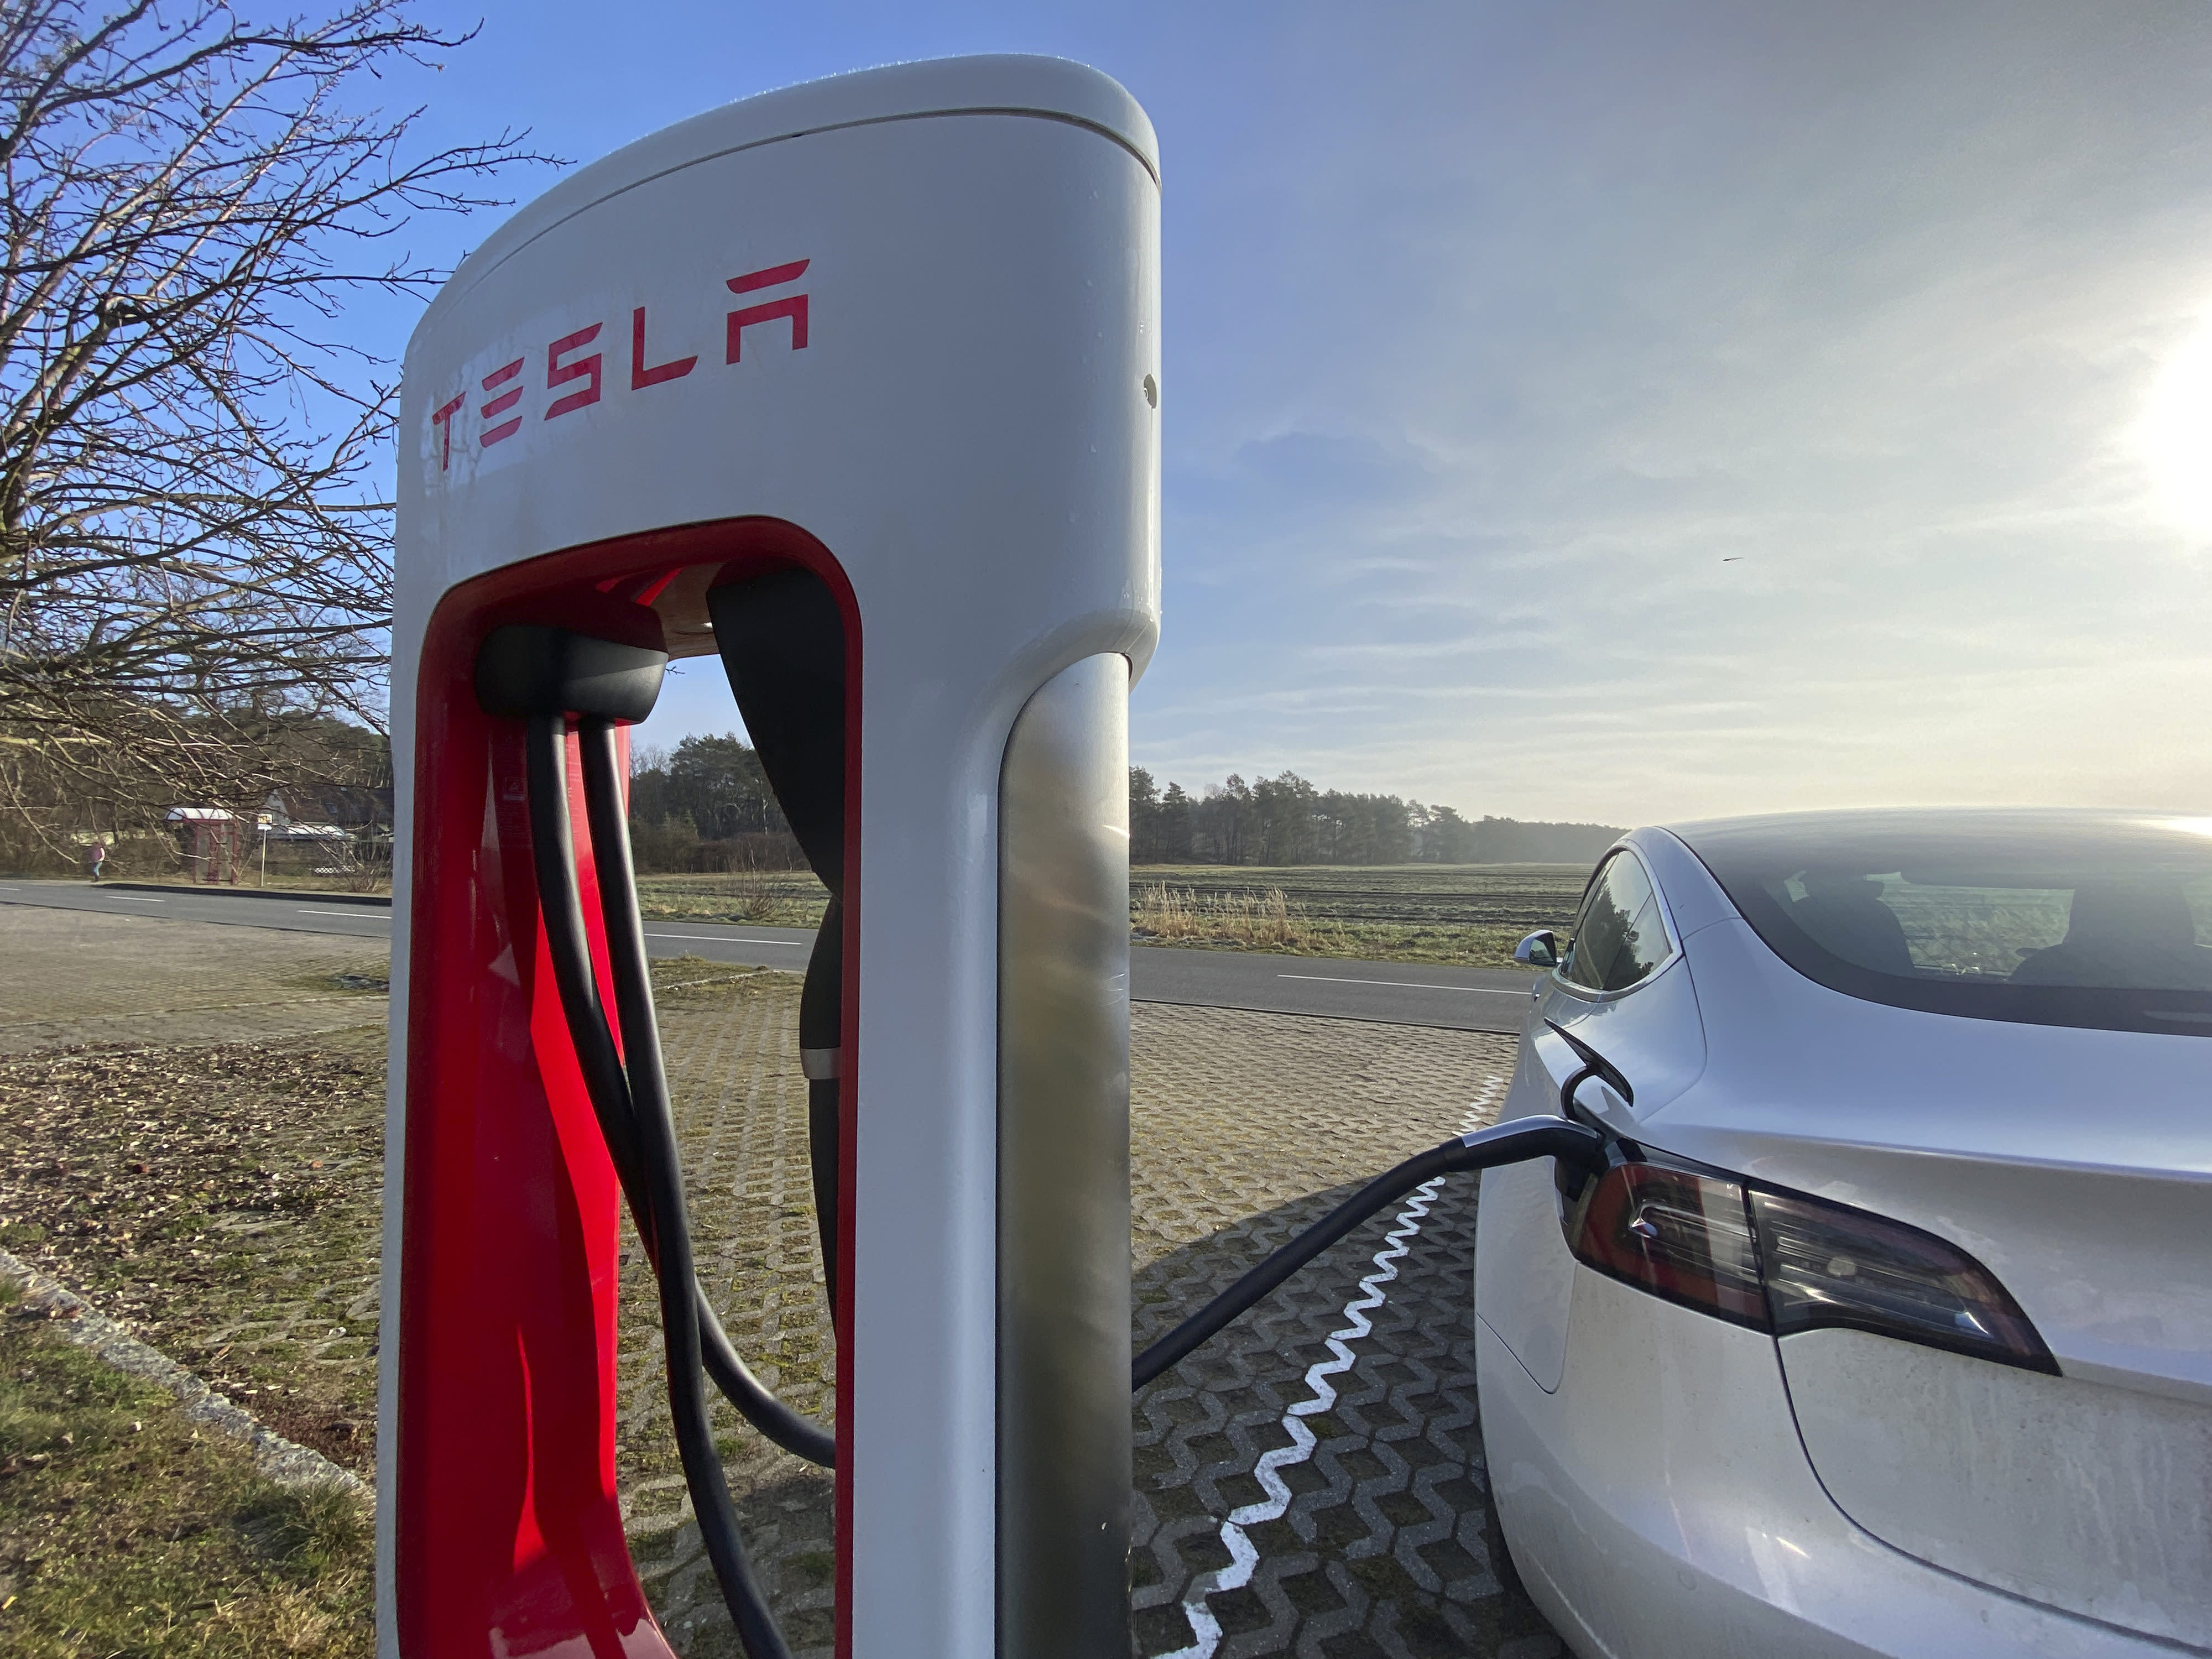 BERSTELAND, GERMANY - MARCH 02: A Tesla Model 3 plugged in and charging at a Supercharger rapid battery charging station for electric vehicles in Bersteland, Germany, on March 02, 2021. (Photo by Thomas Koehler/Photothek via Getty Images)